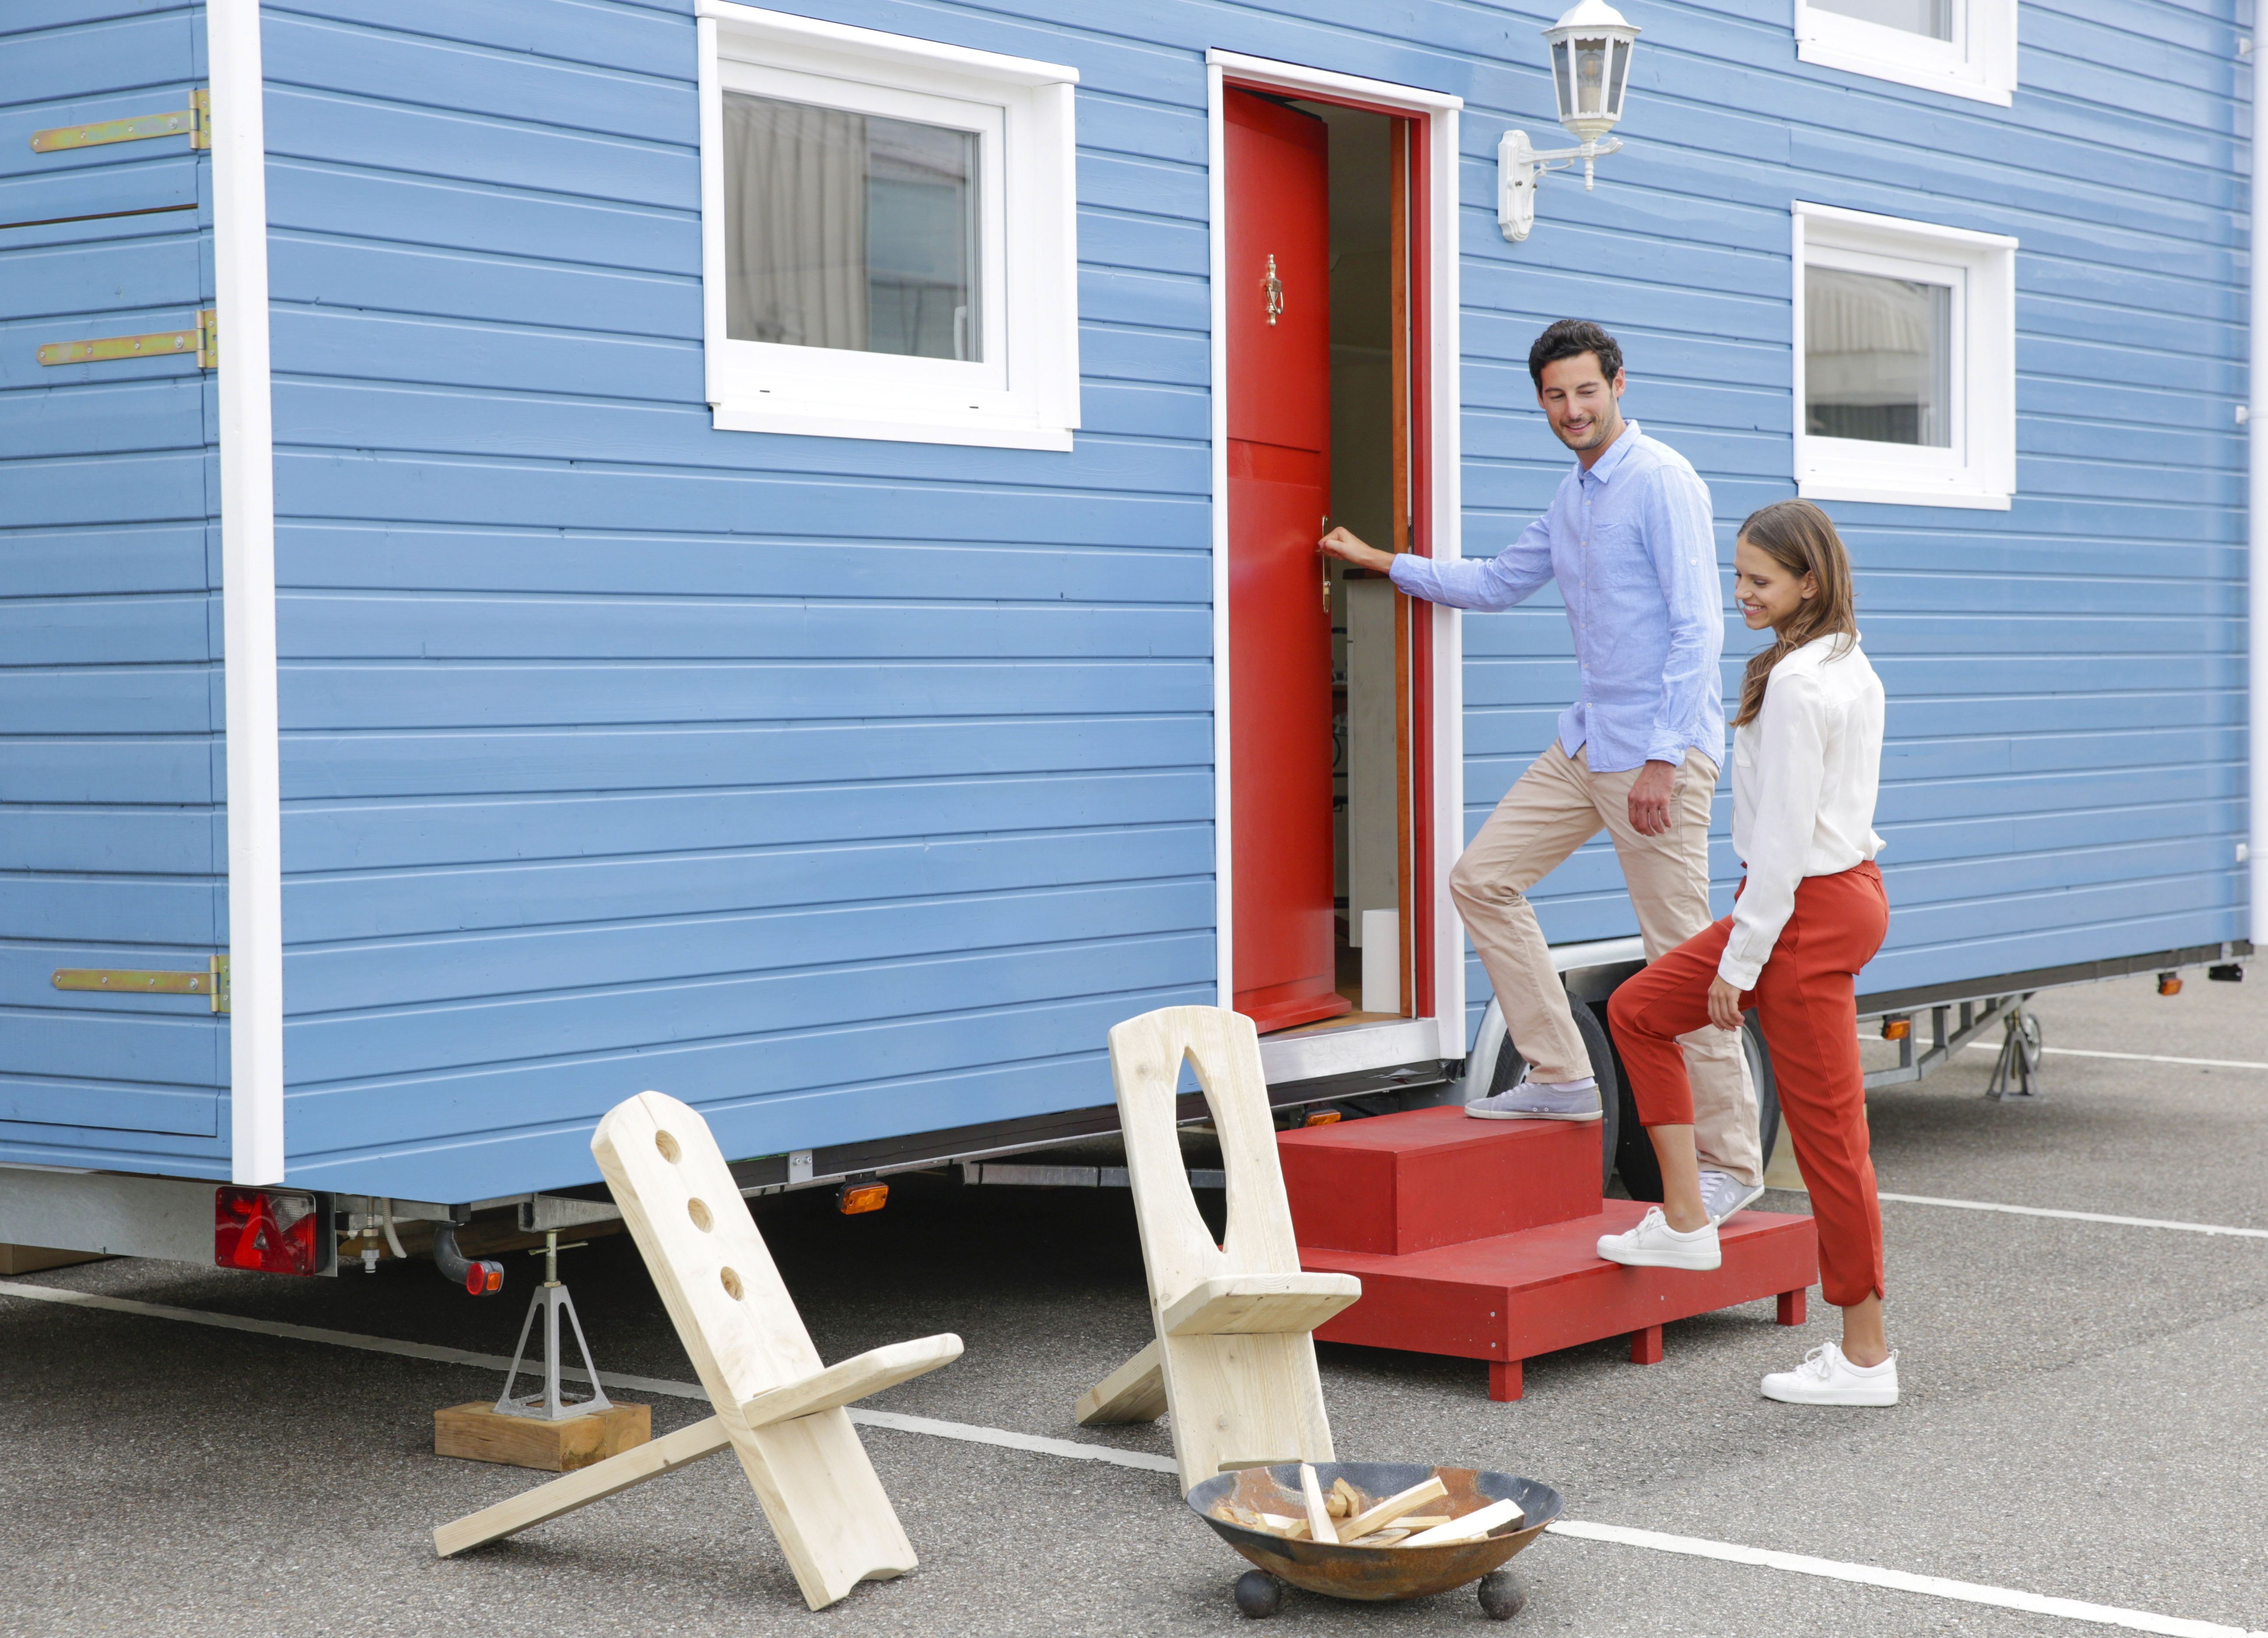 new-housing-paar-geht-in-tinyhouse